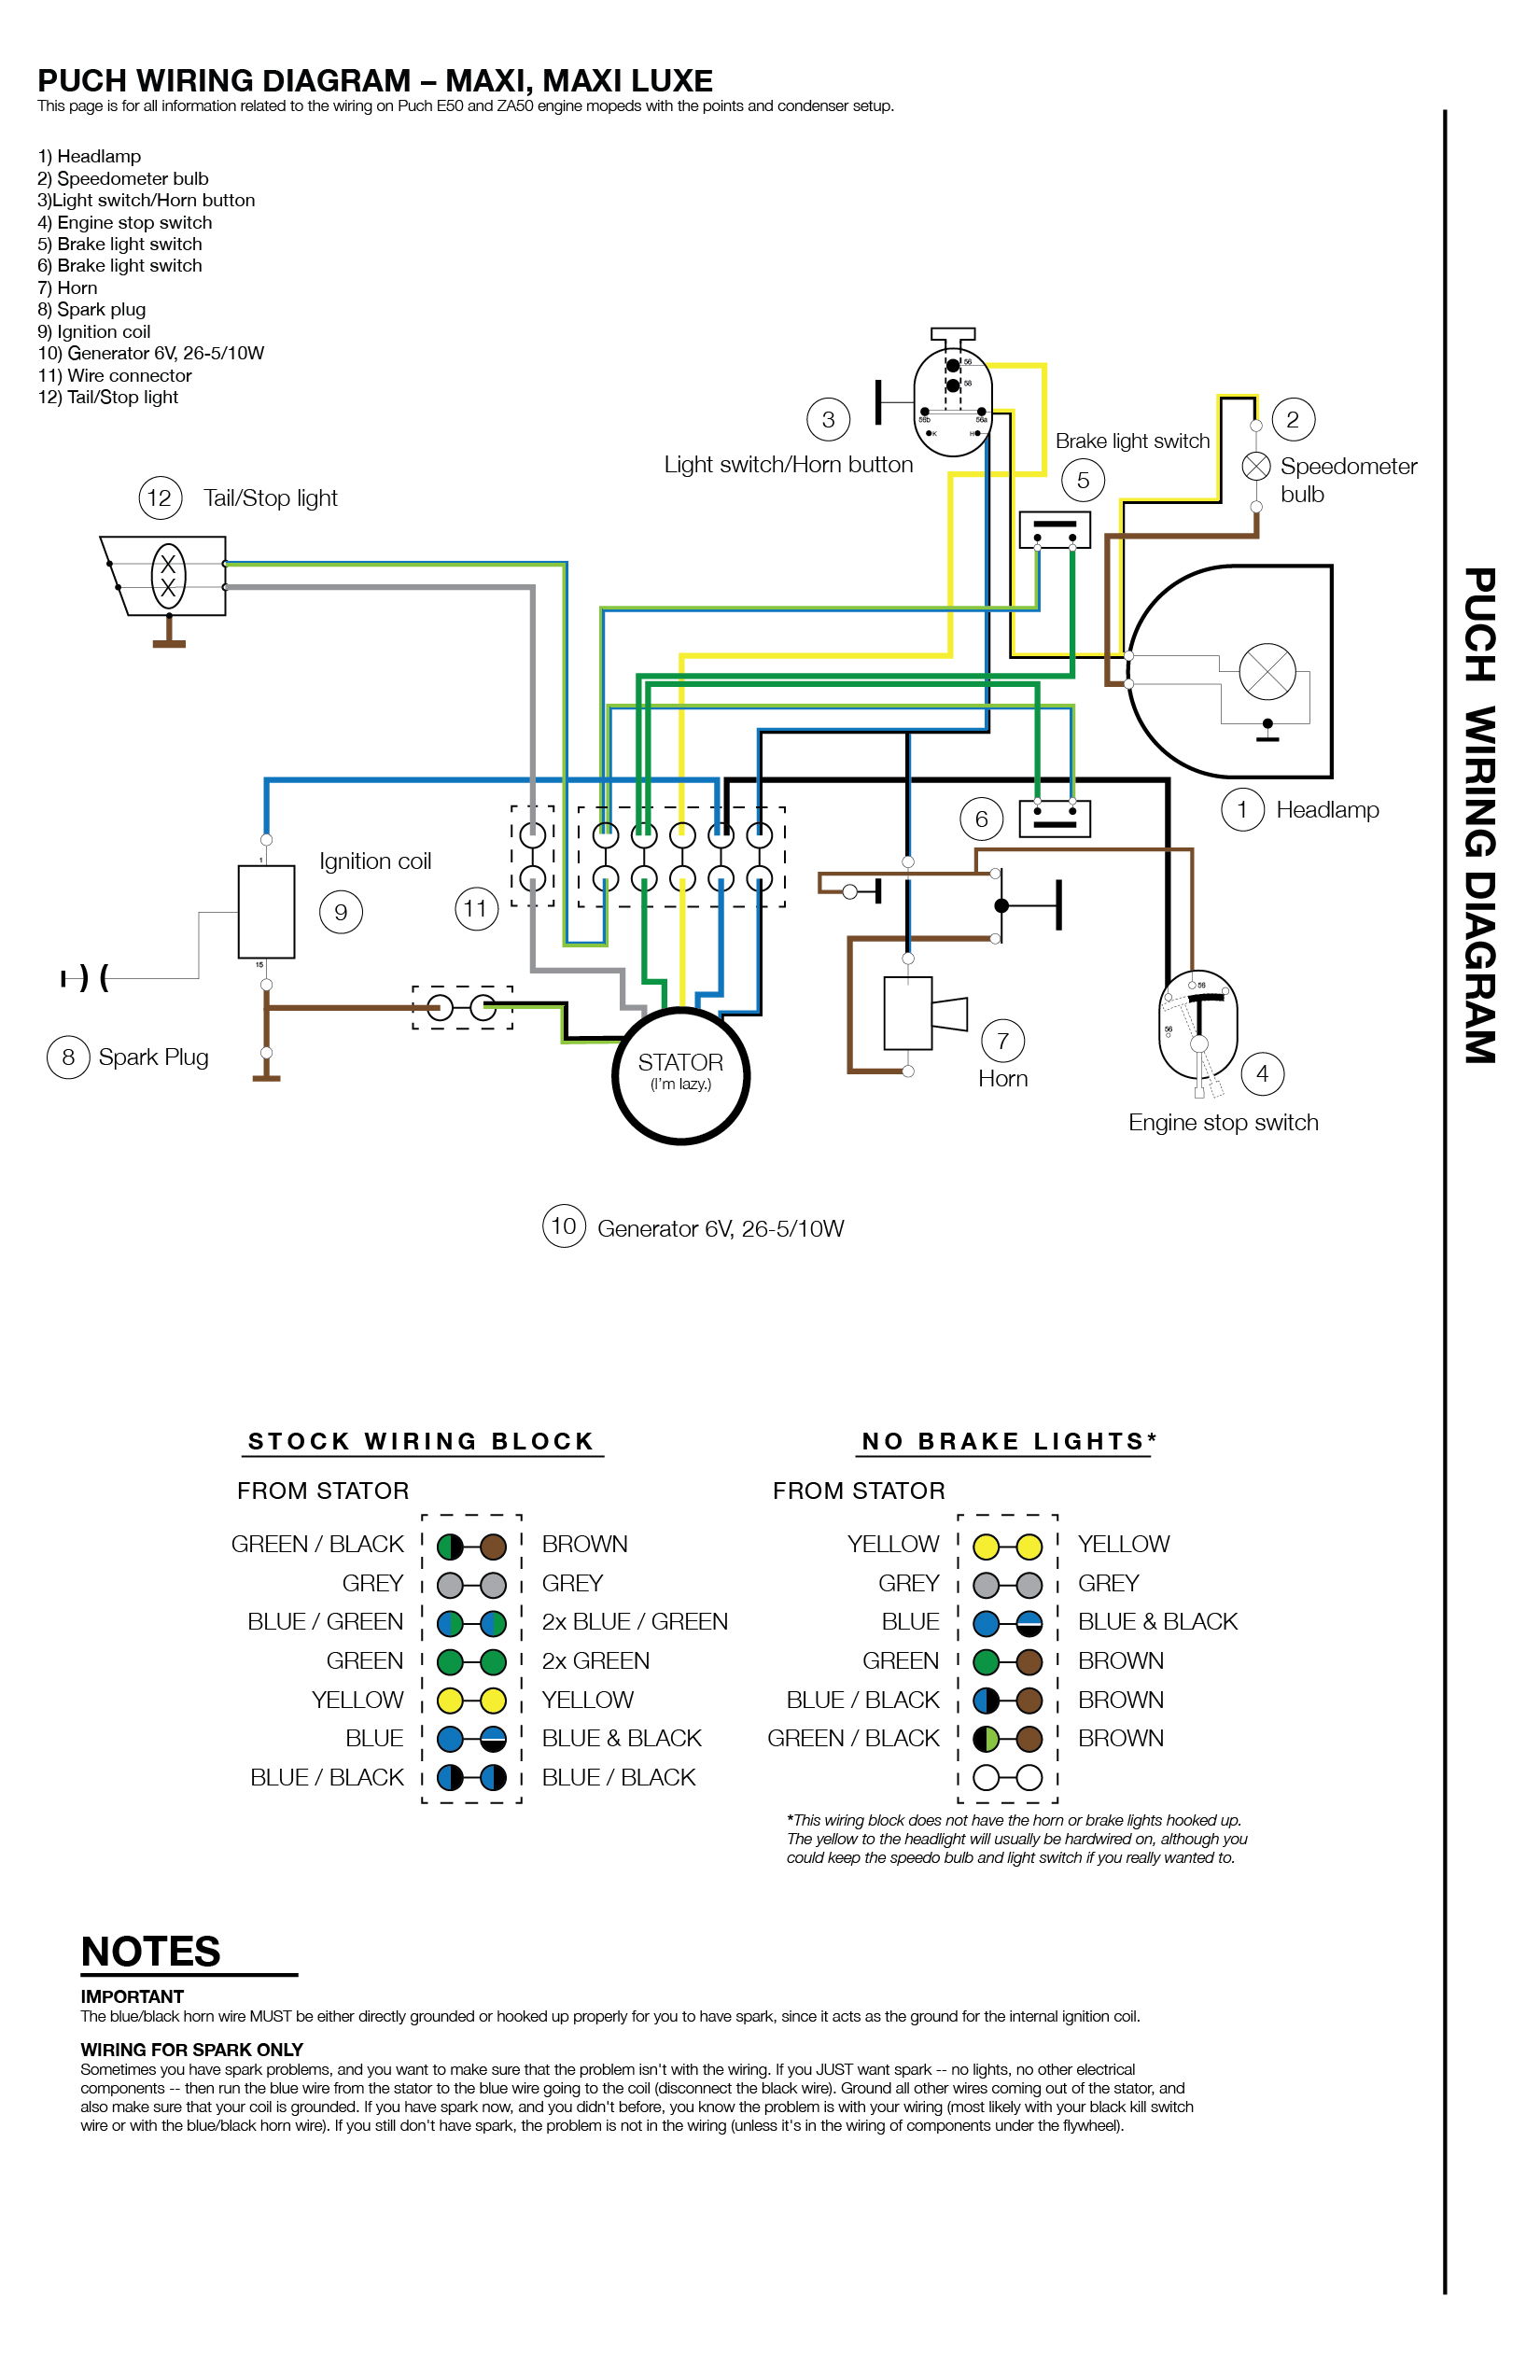 Scooter Ignition Switch Wiring Diagram from www.mopedarmy.com